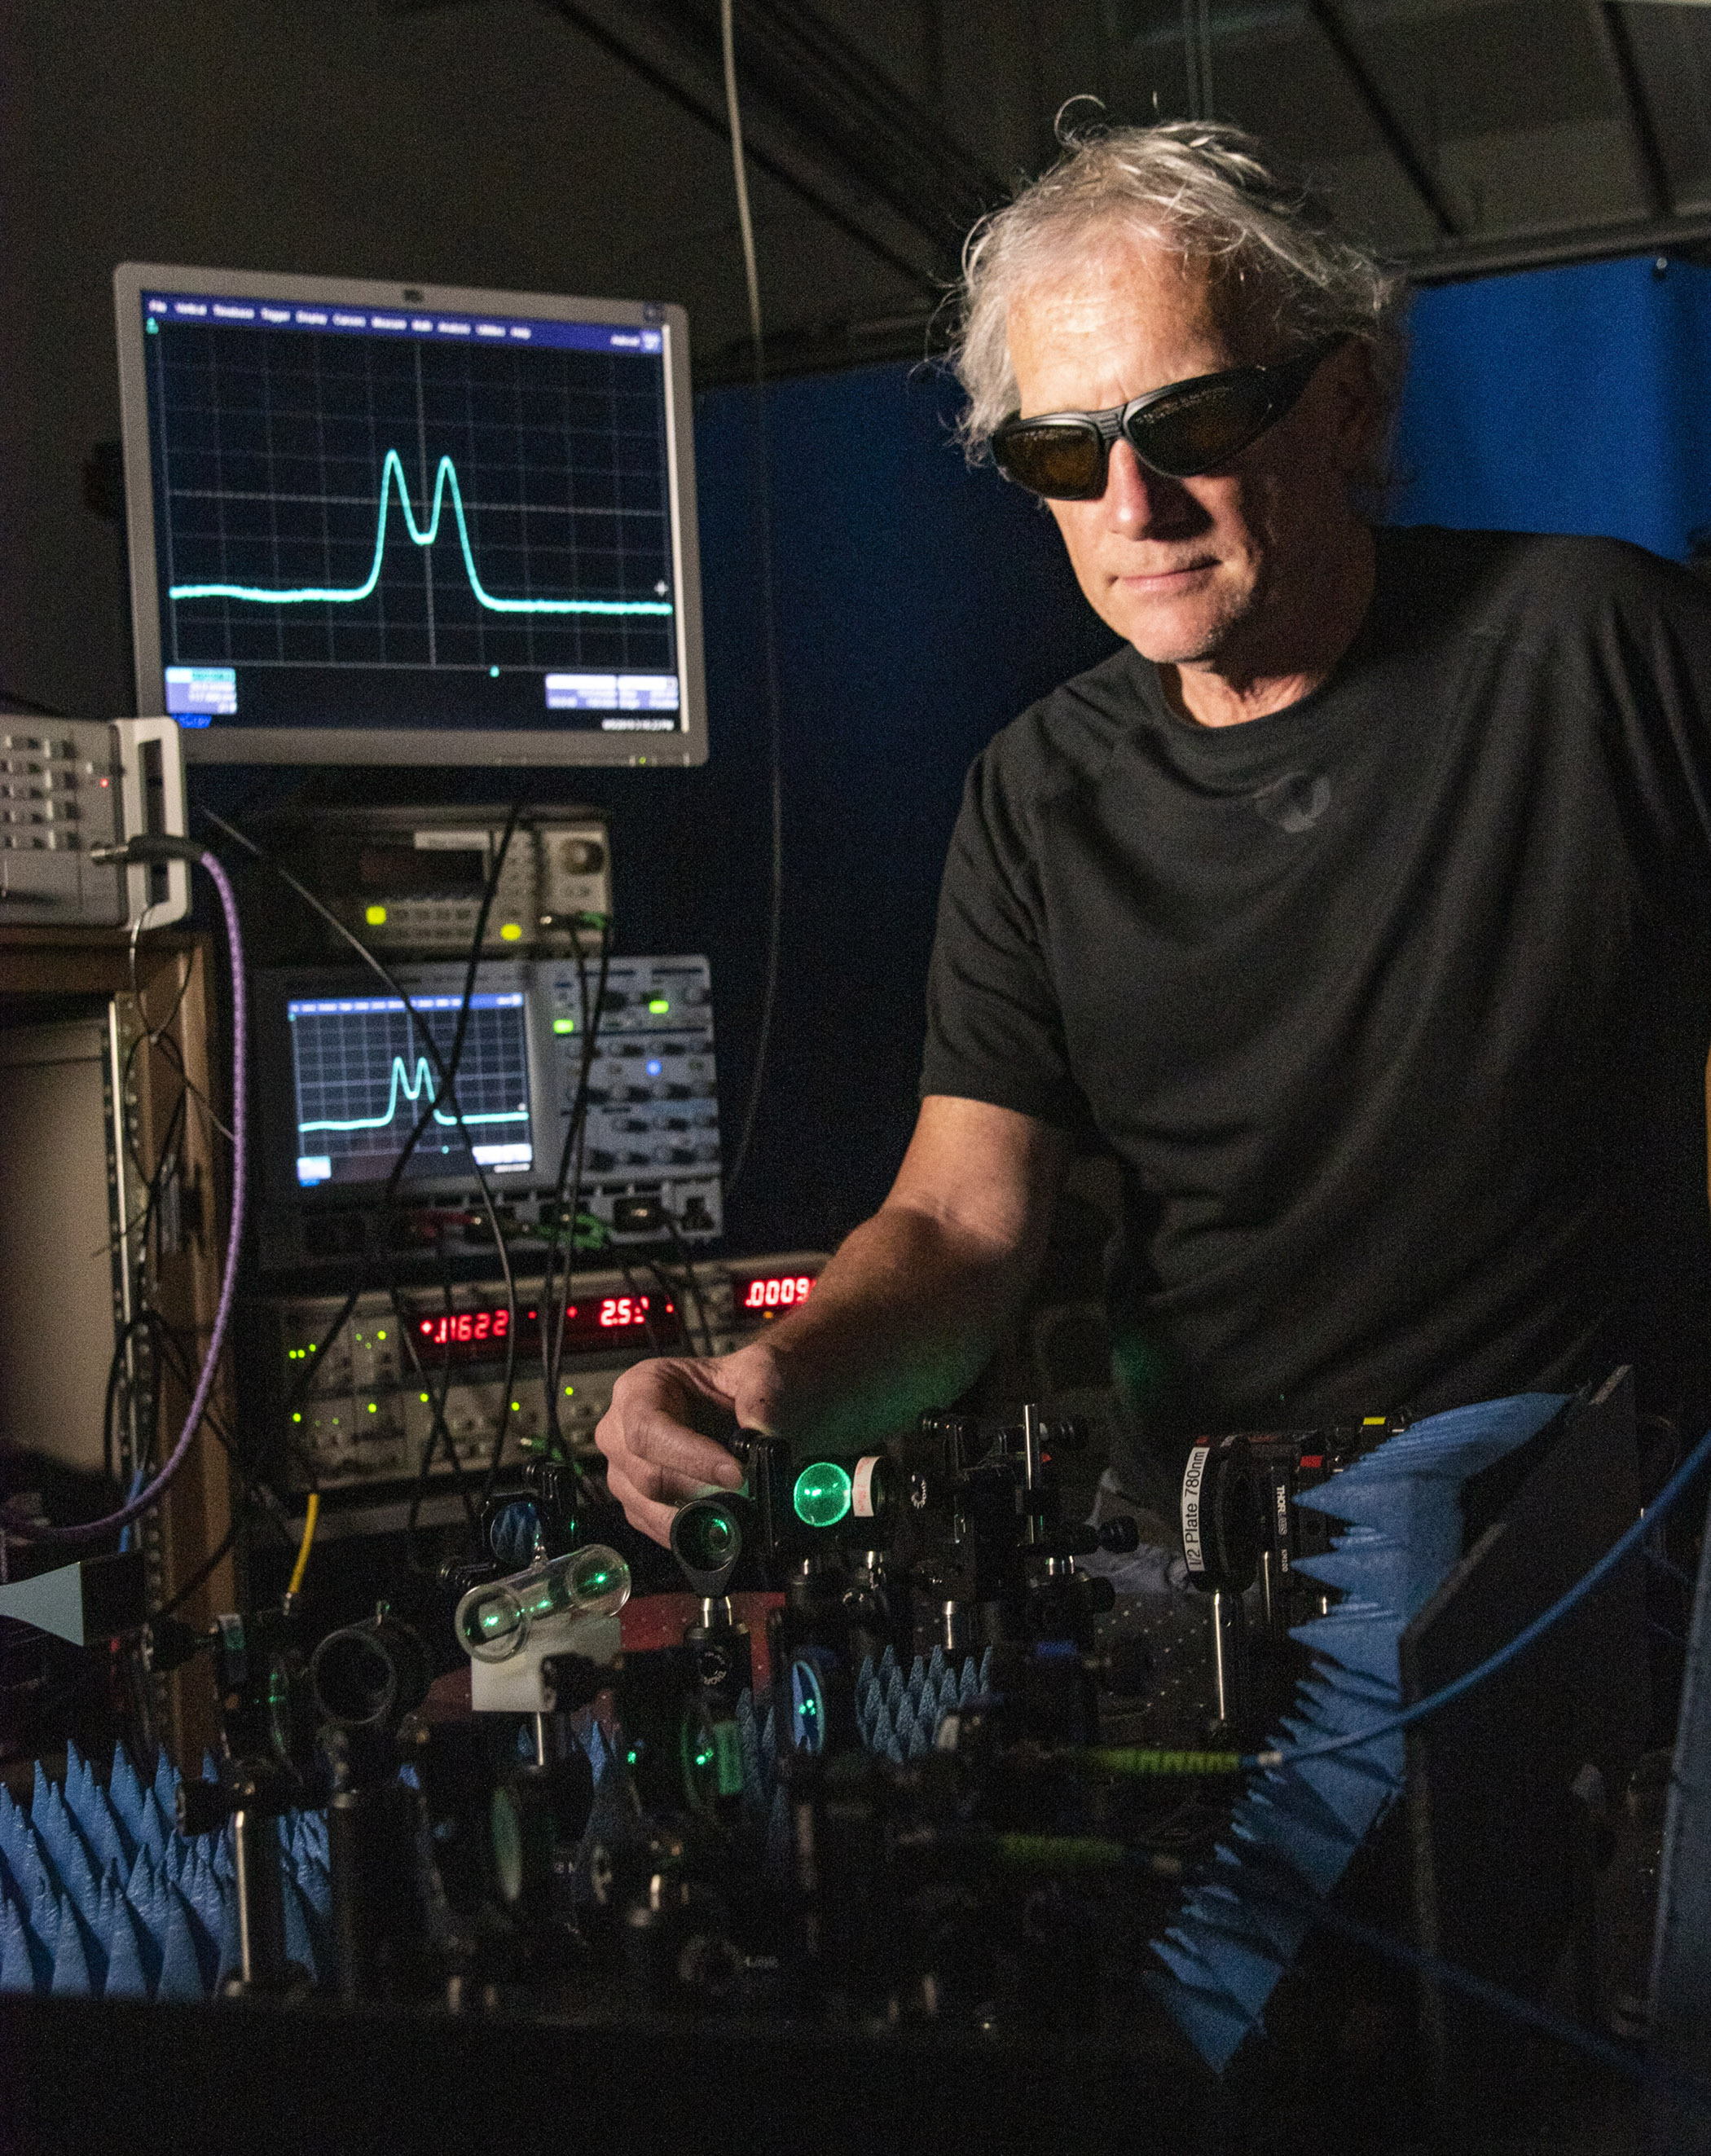 NIST Crew Exhibits Atoms Can Obtain Frequent Communications Indicators